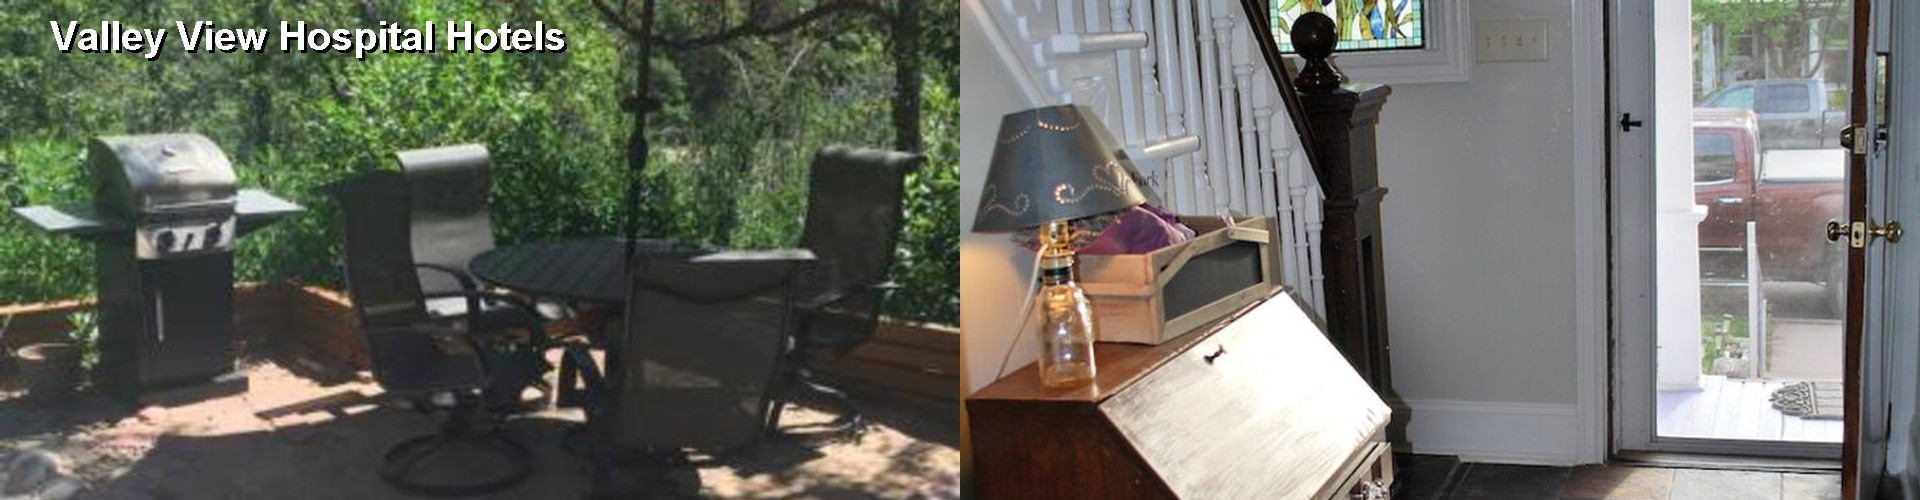 64 Hotels Near Valley View Hospital In Glenwood Springs Co